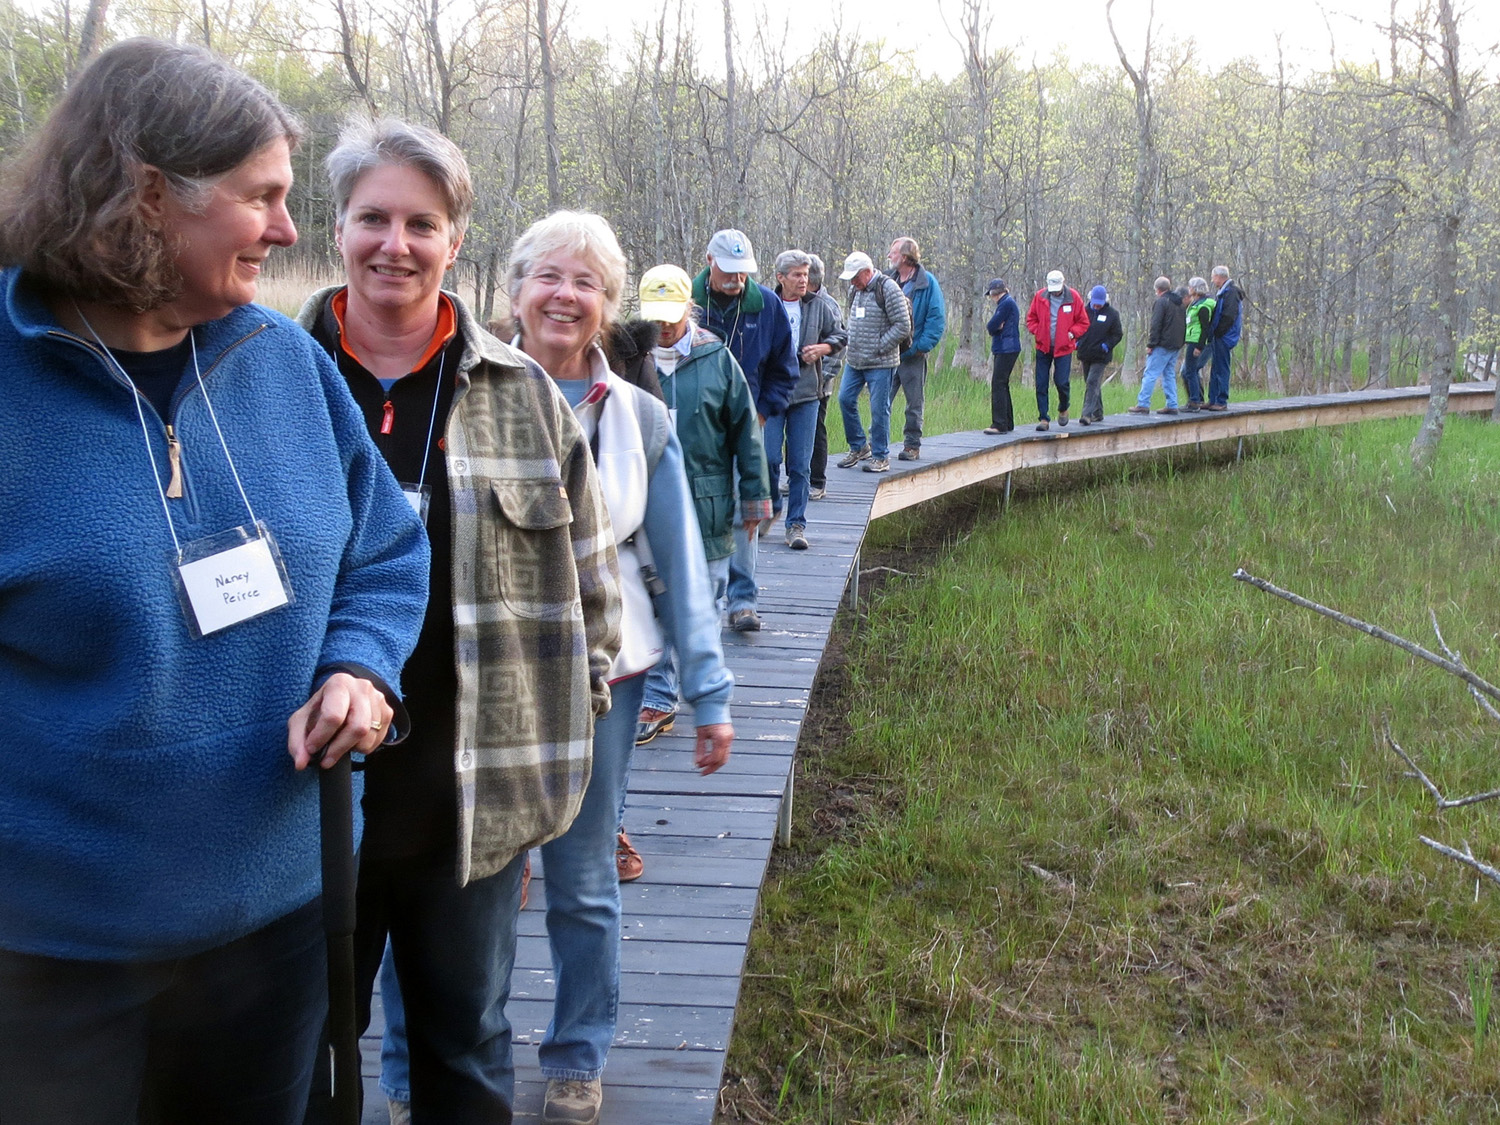 Group out for a frog walk, Bay Shore Blufflands